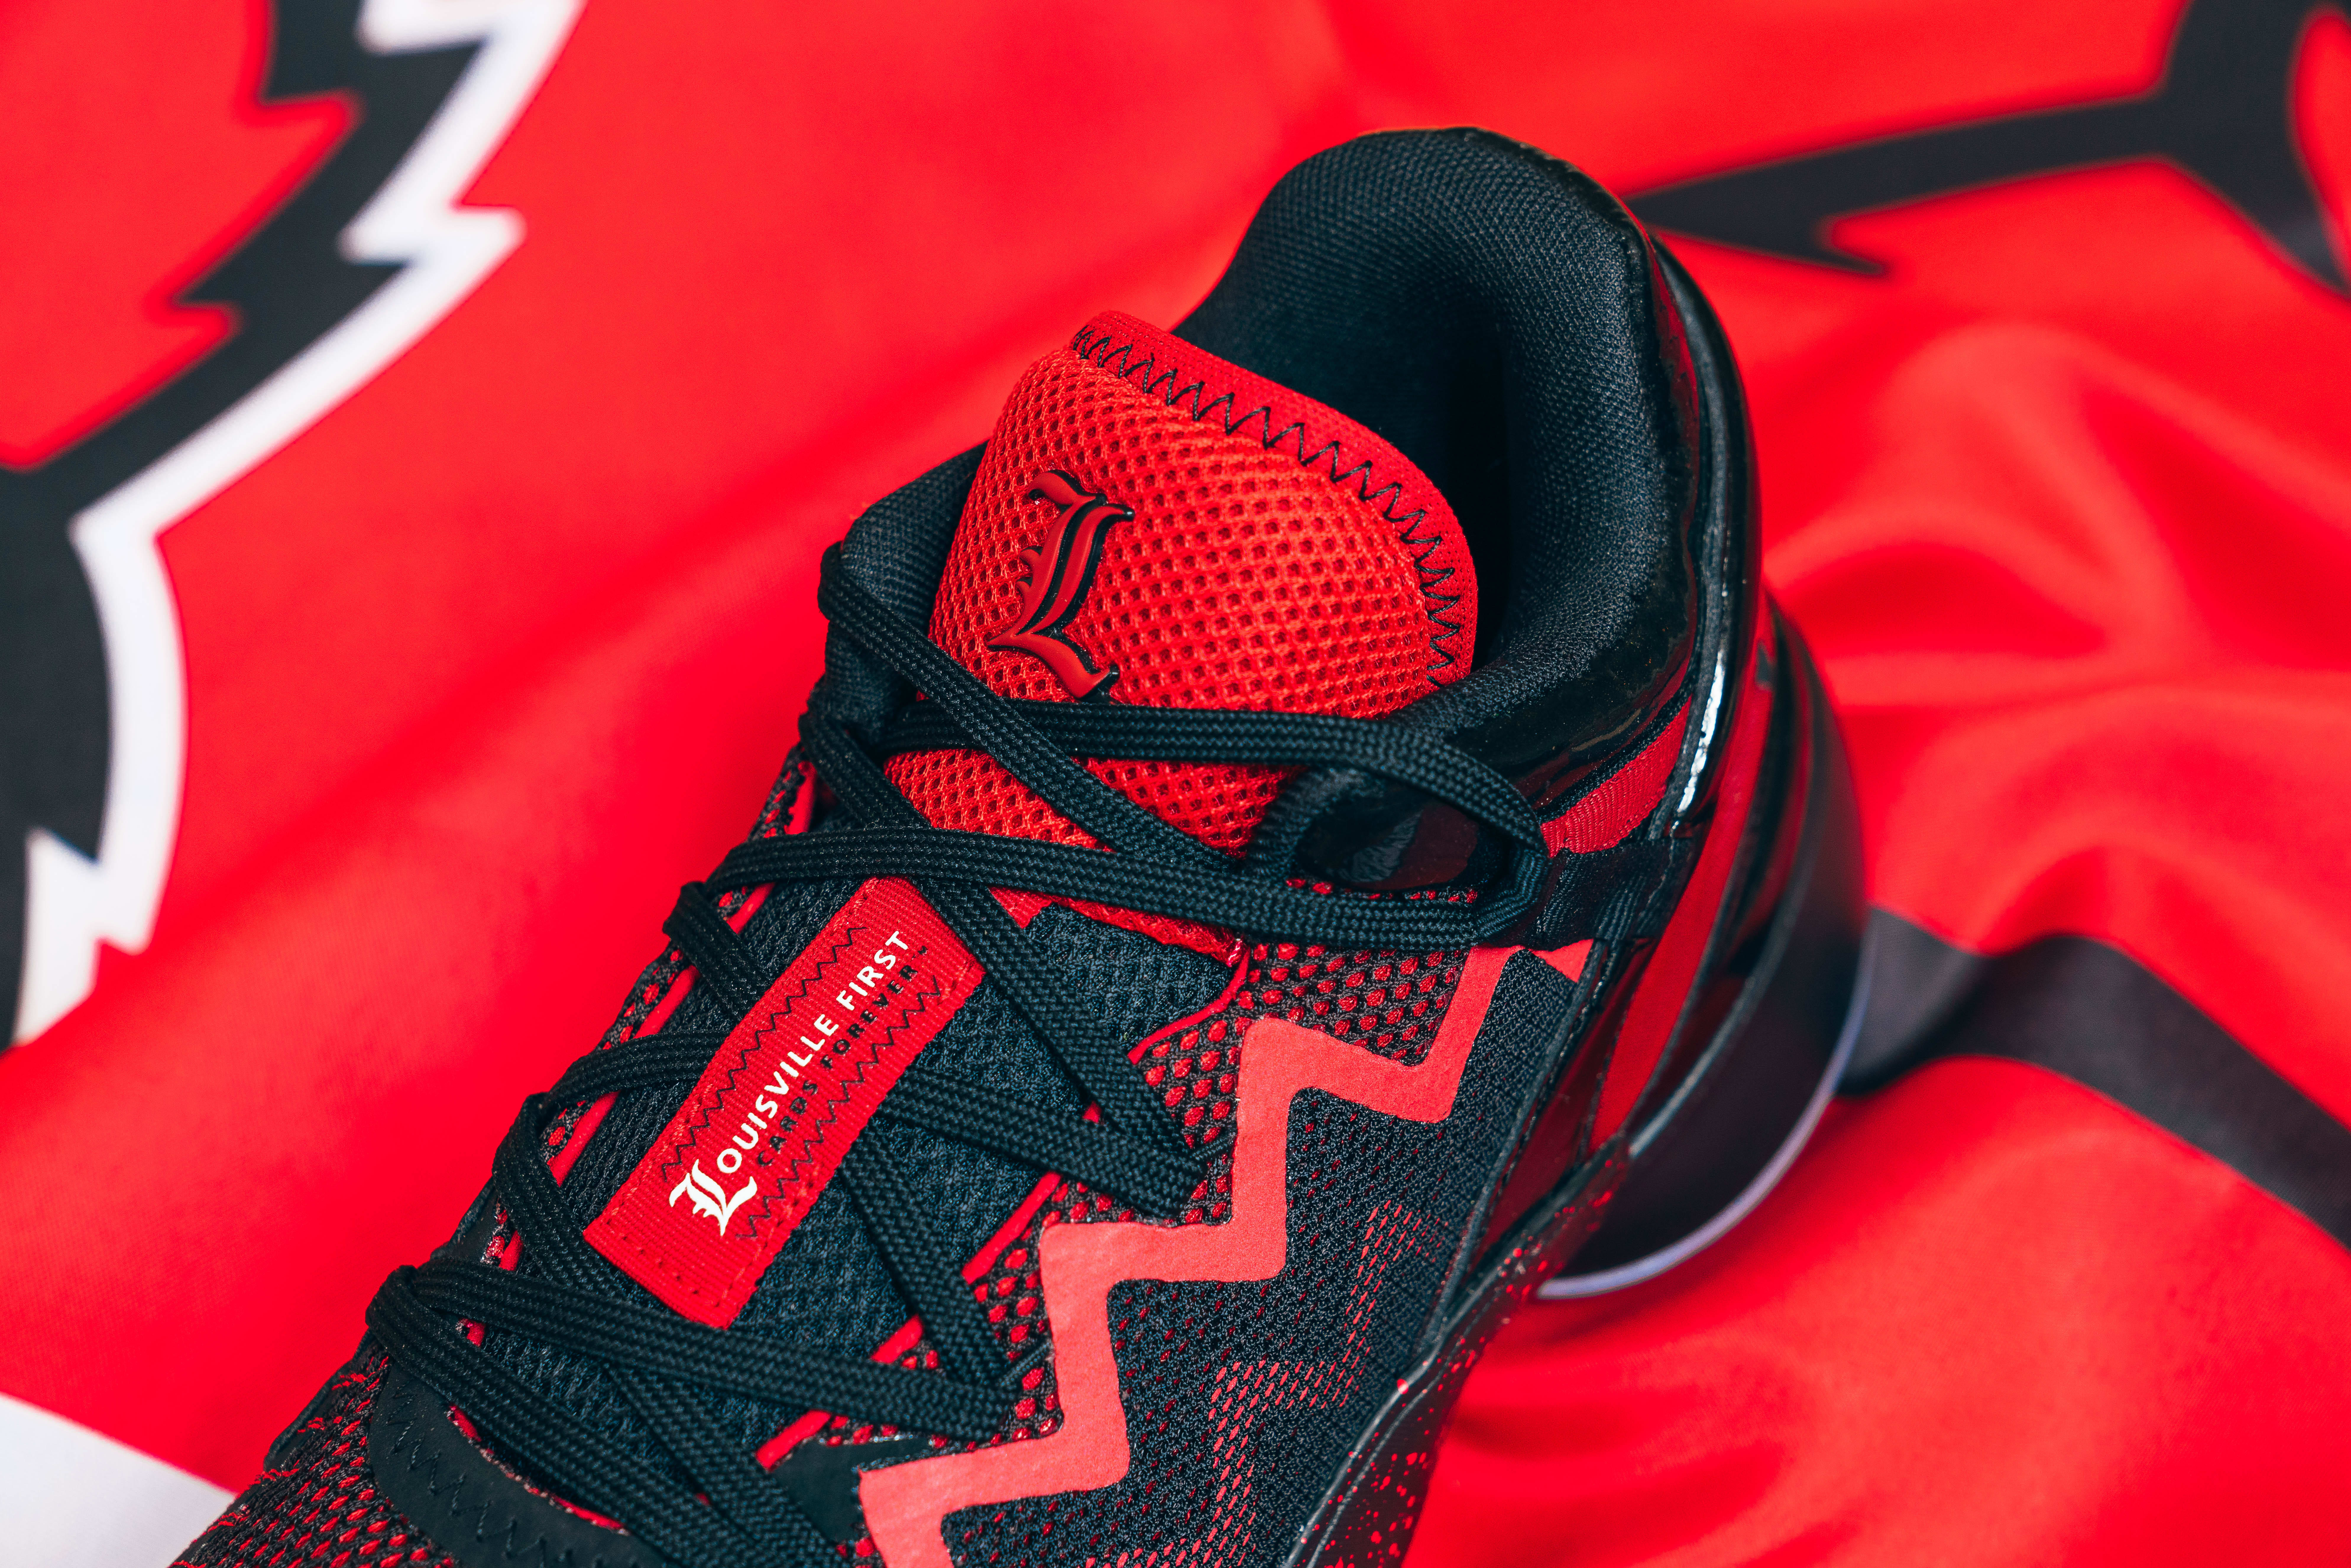 Louisville x Adidas D.O.N. Issue #2 'A Shoe For Change' Tongue